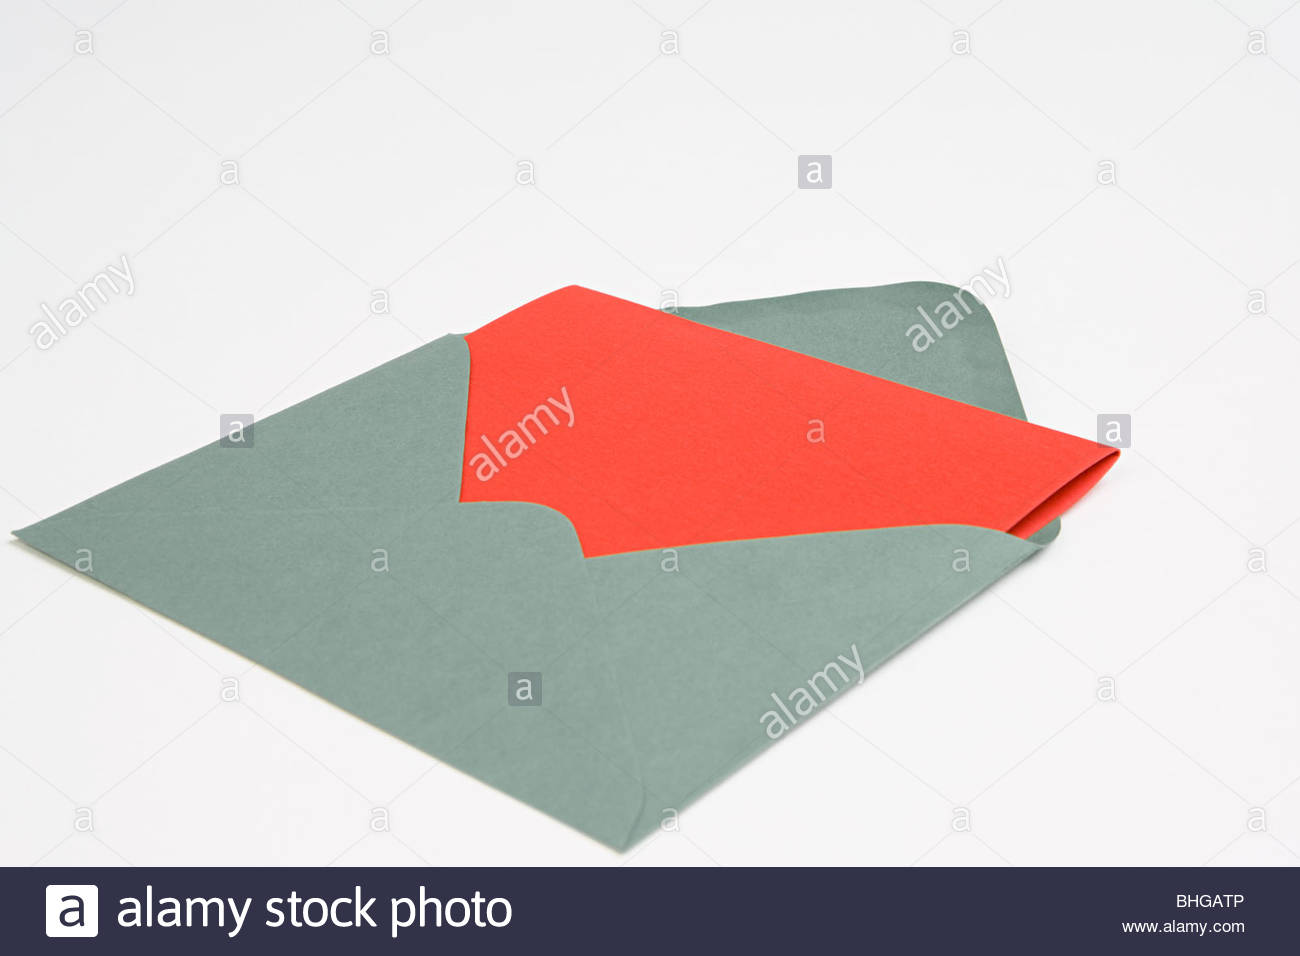 Red card in envelope - Stock Image